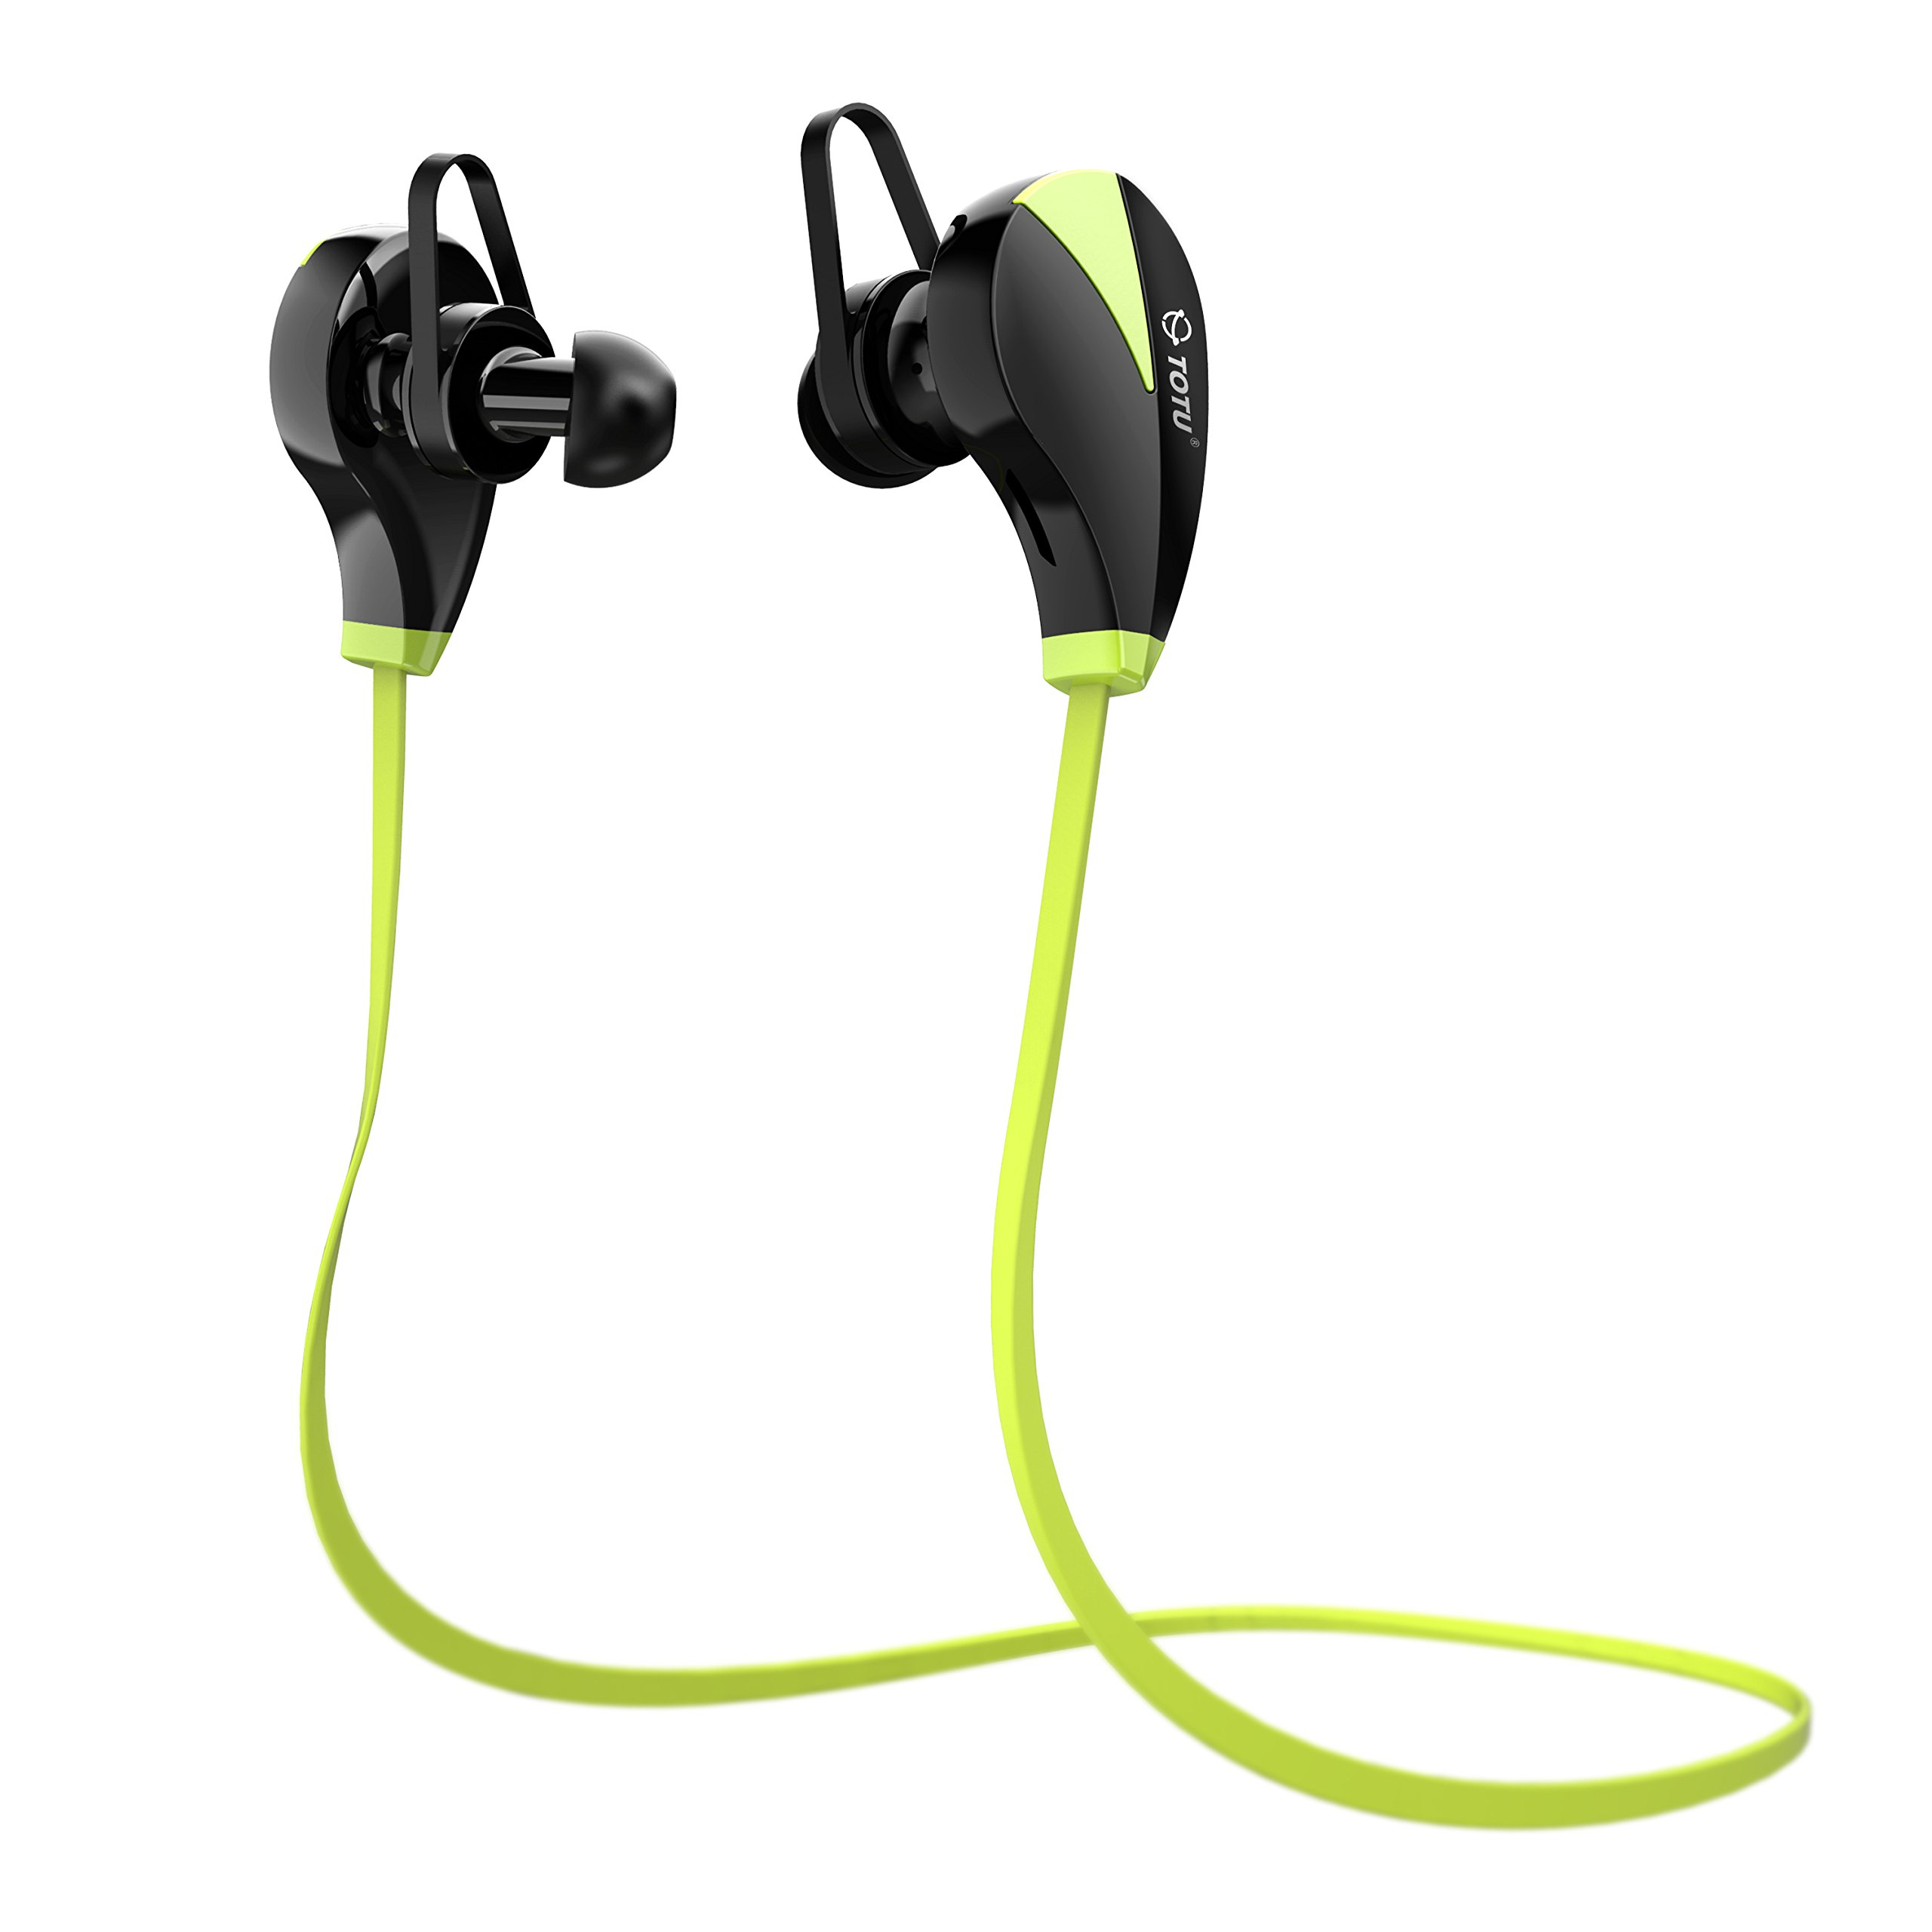 TOTU Bluetooth Headphones, V4.1 Stereo Noise Isolating Sports Sweatproof Headset with Mic for iPhone 7 Samsung Galaxy S7 and Android Phones [Upgraded Version], Black … (Green)